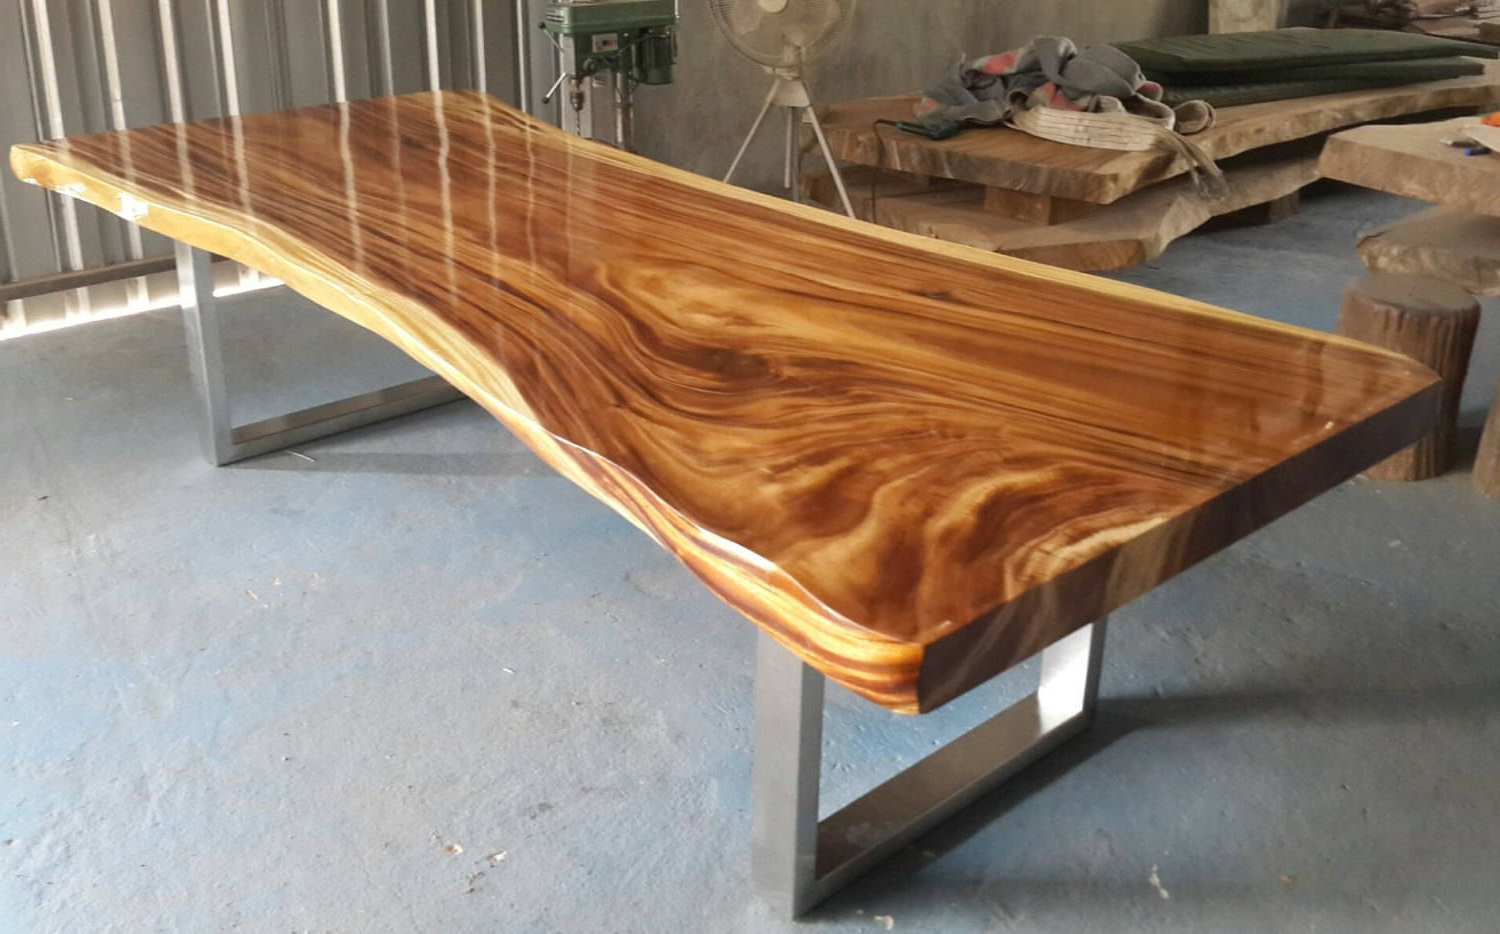 Acacia Top Dining Tables With Metal Legs Throughout Preferred Live Edge Dining Table Golden Acacia Wood Reclaimed Single (View 7 of 25)